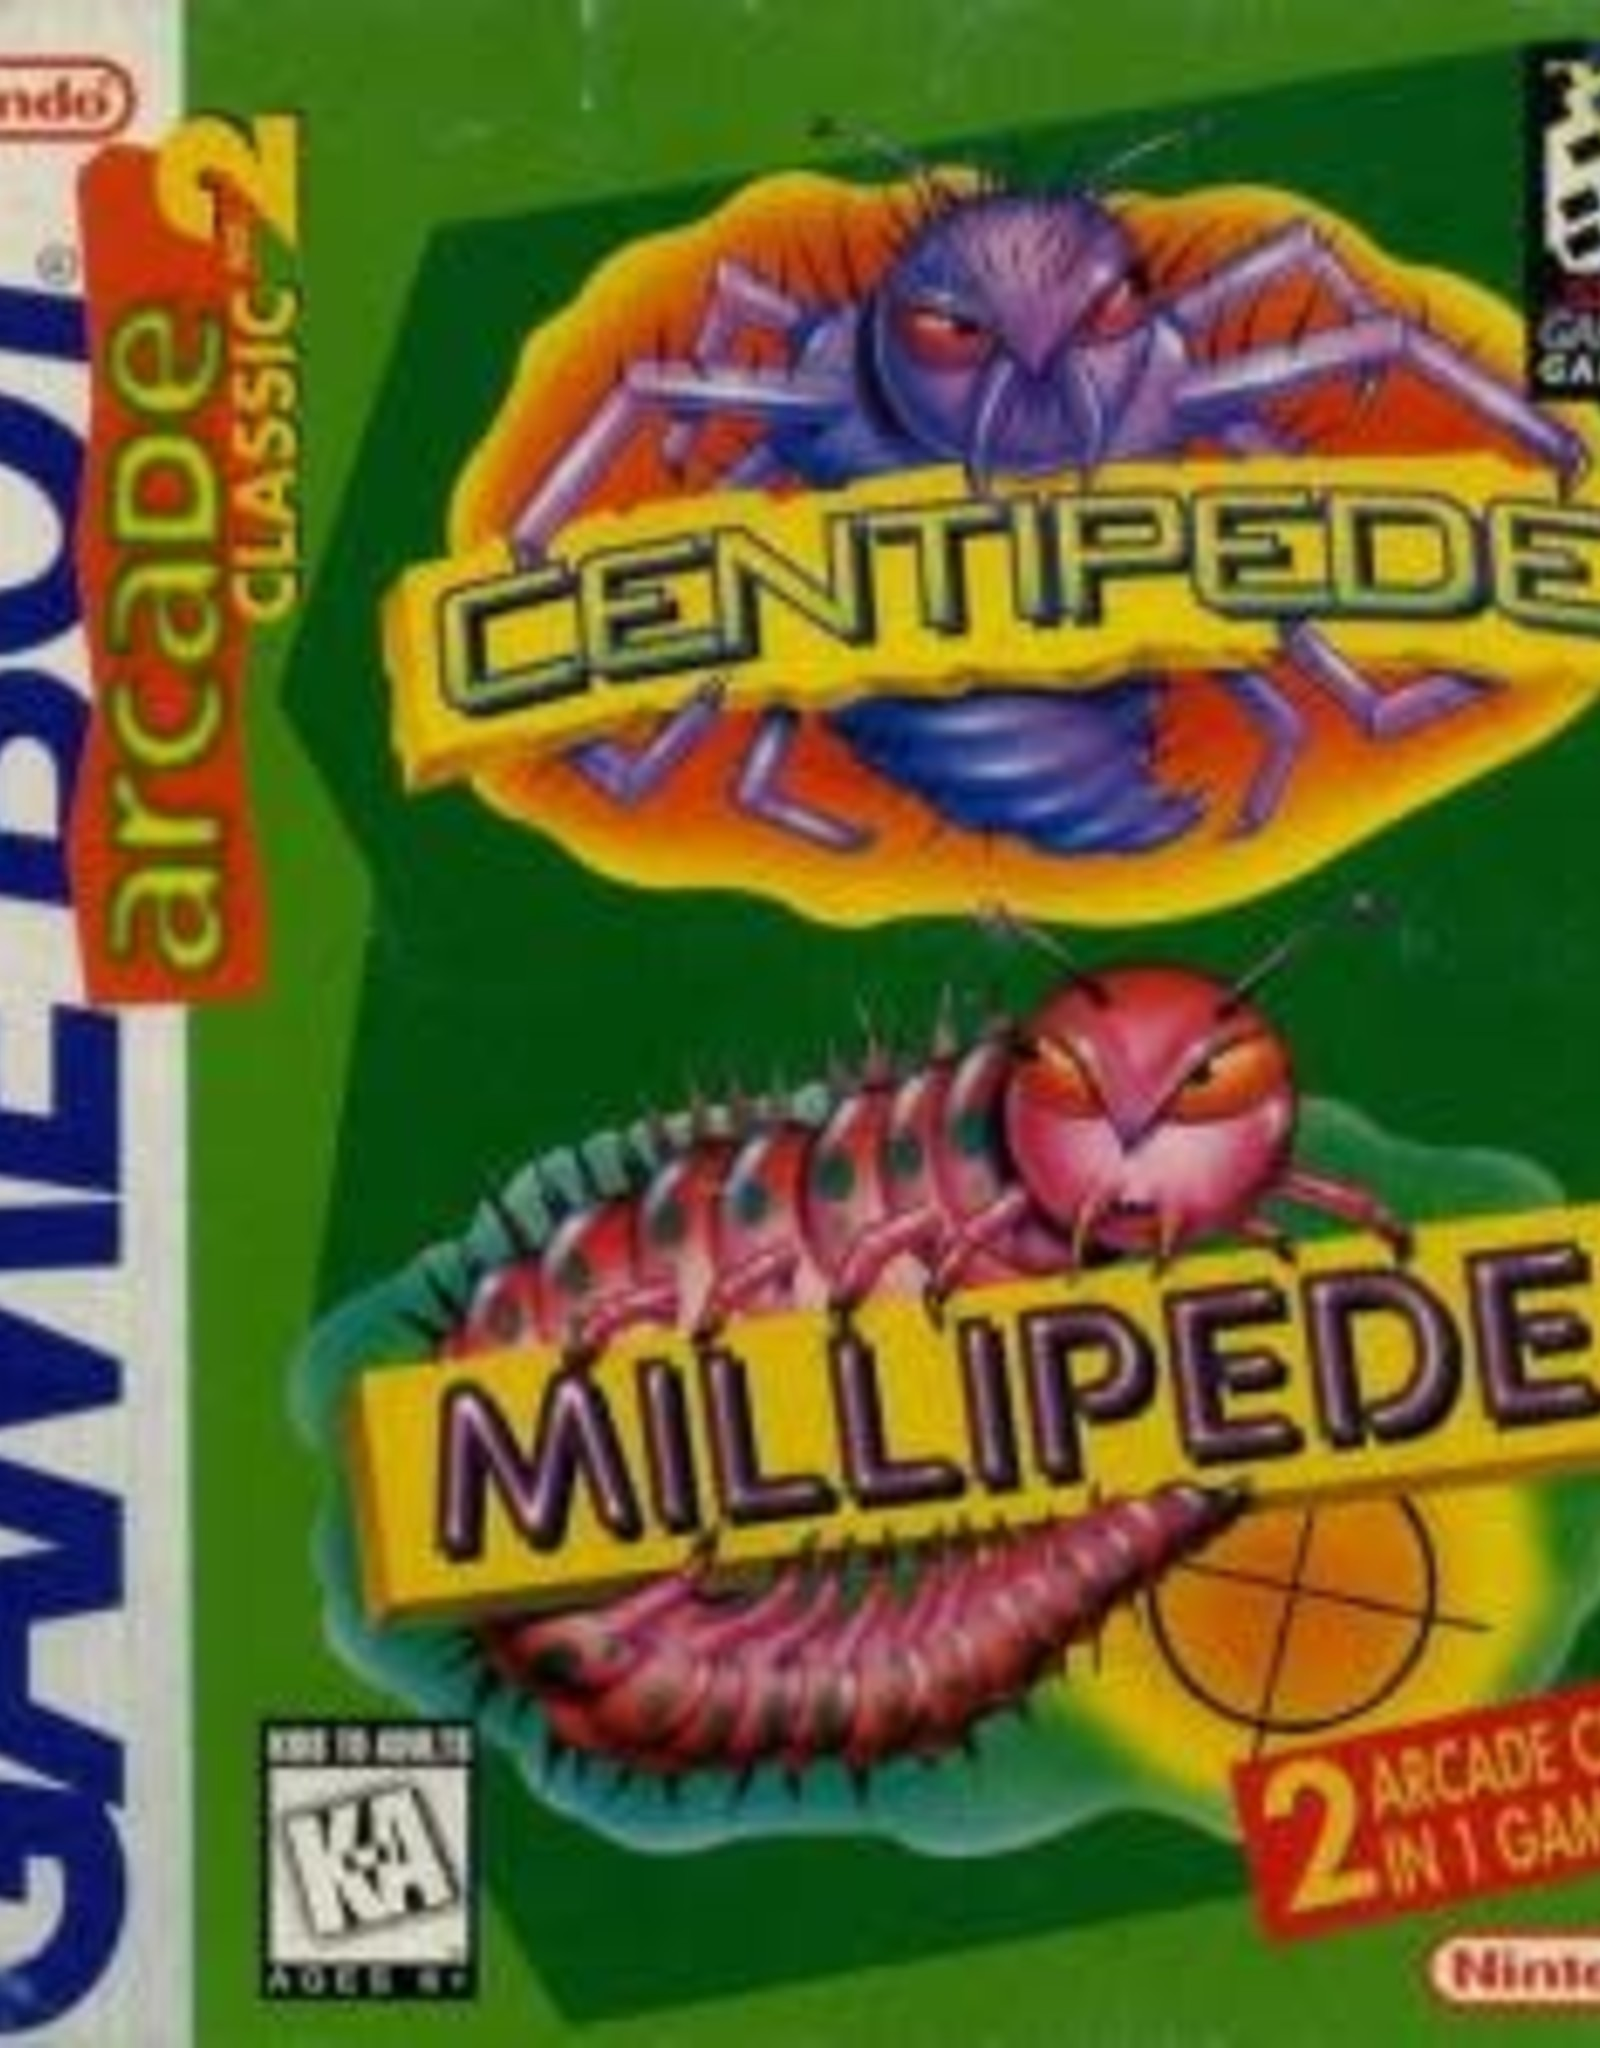 GameBoy Arcade Classic 2: Centipede and Millipede (Cart Only)